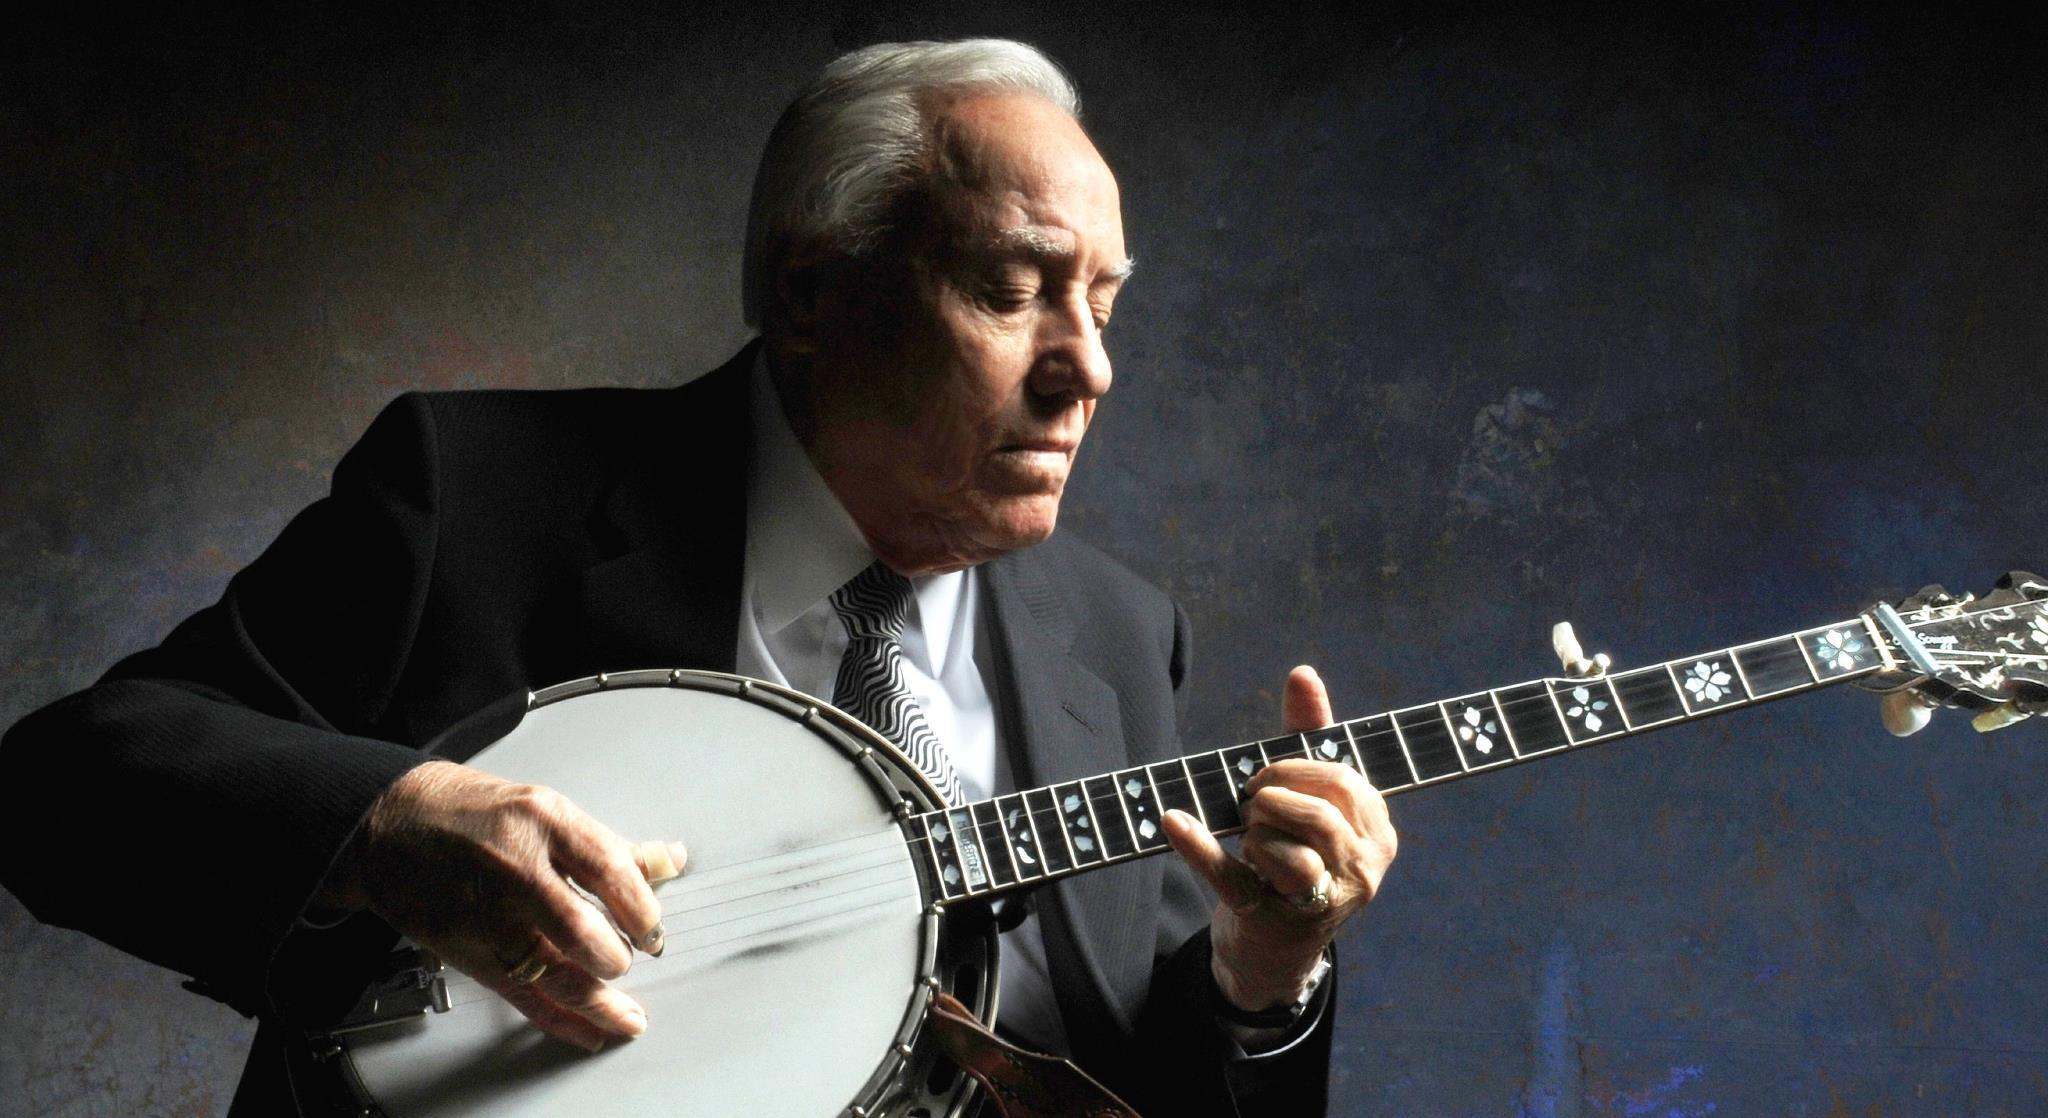 The Family of Earl Scruggs is deeply grateful for all the thoughts prayers and expressions of sympathy that have come from all over the world